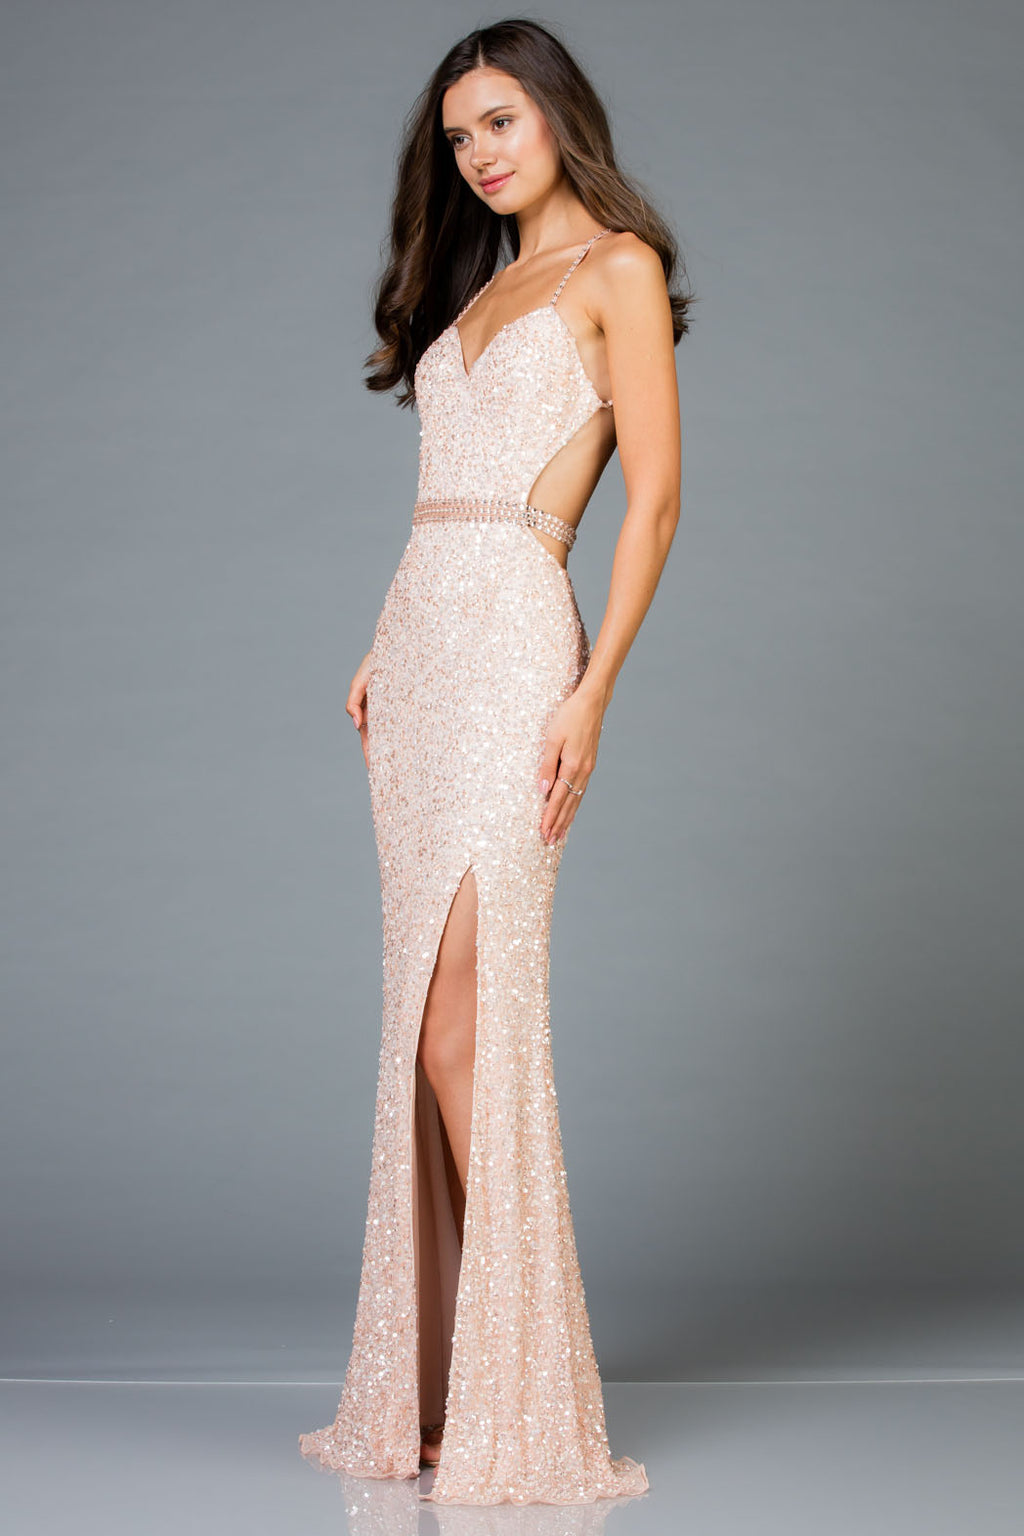 Scala 48931 Evening Dress - CYC Boutique